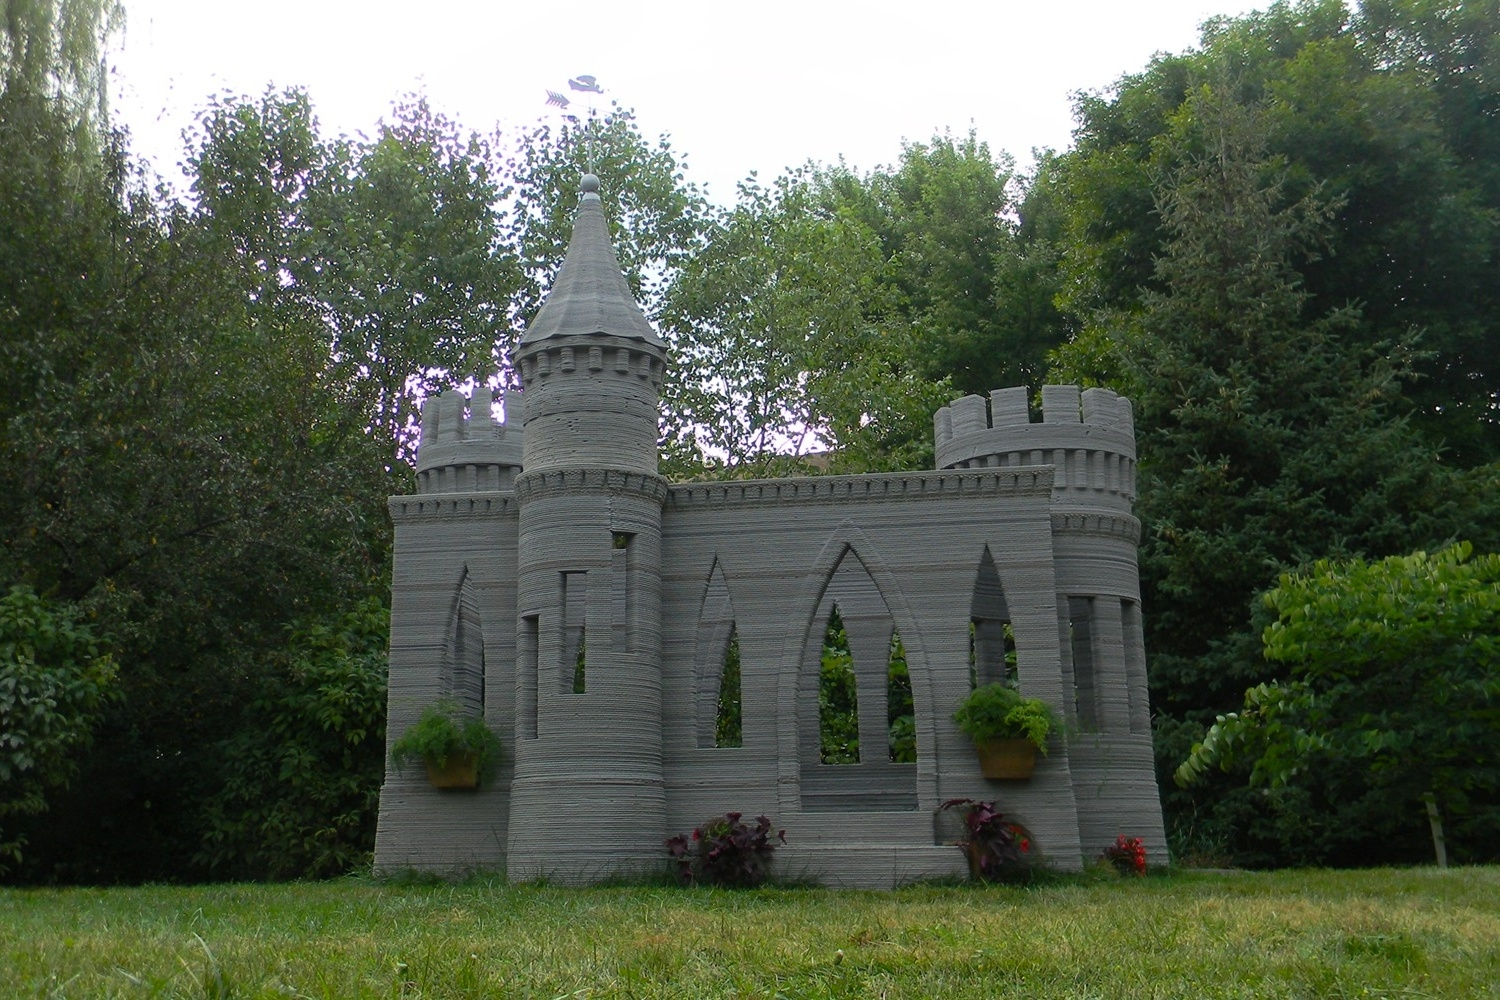 One Man's Ambitious Project: A 3D Printed Castle